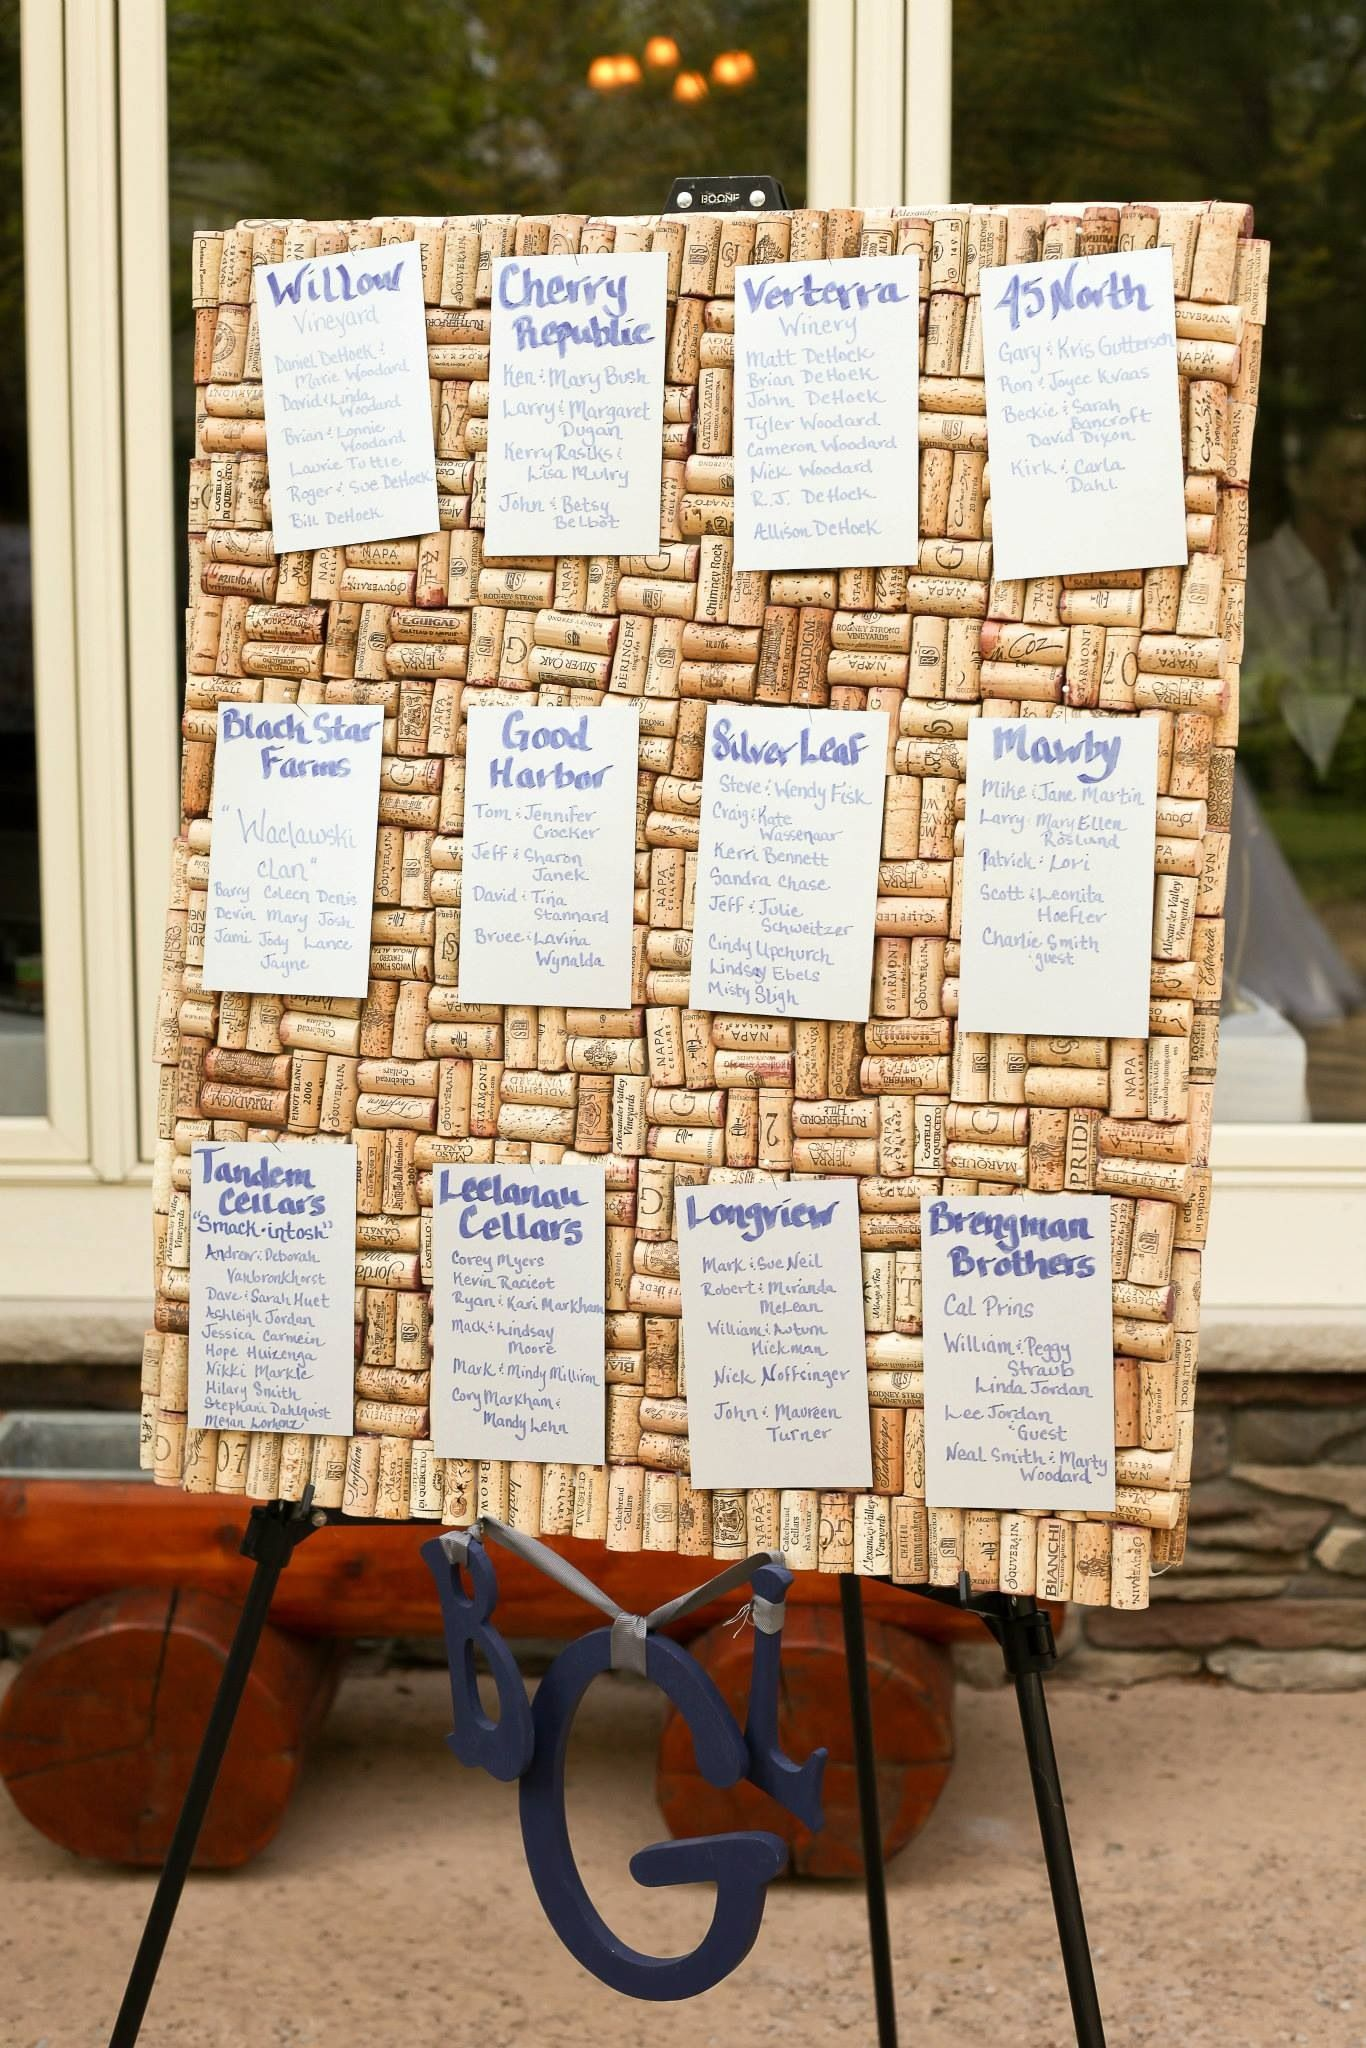 Wine Cork Board For Sheeting Chart Tables Assigned By Winery Names T Wedding Table Assignments Minimalist Wedding Invitation Modern Music Wedding Invitations